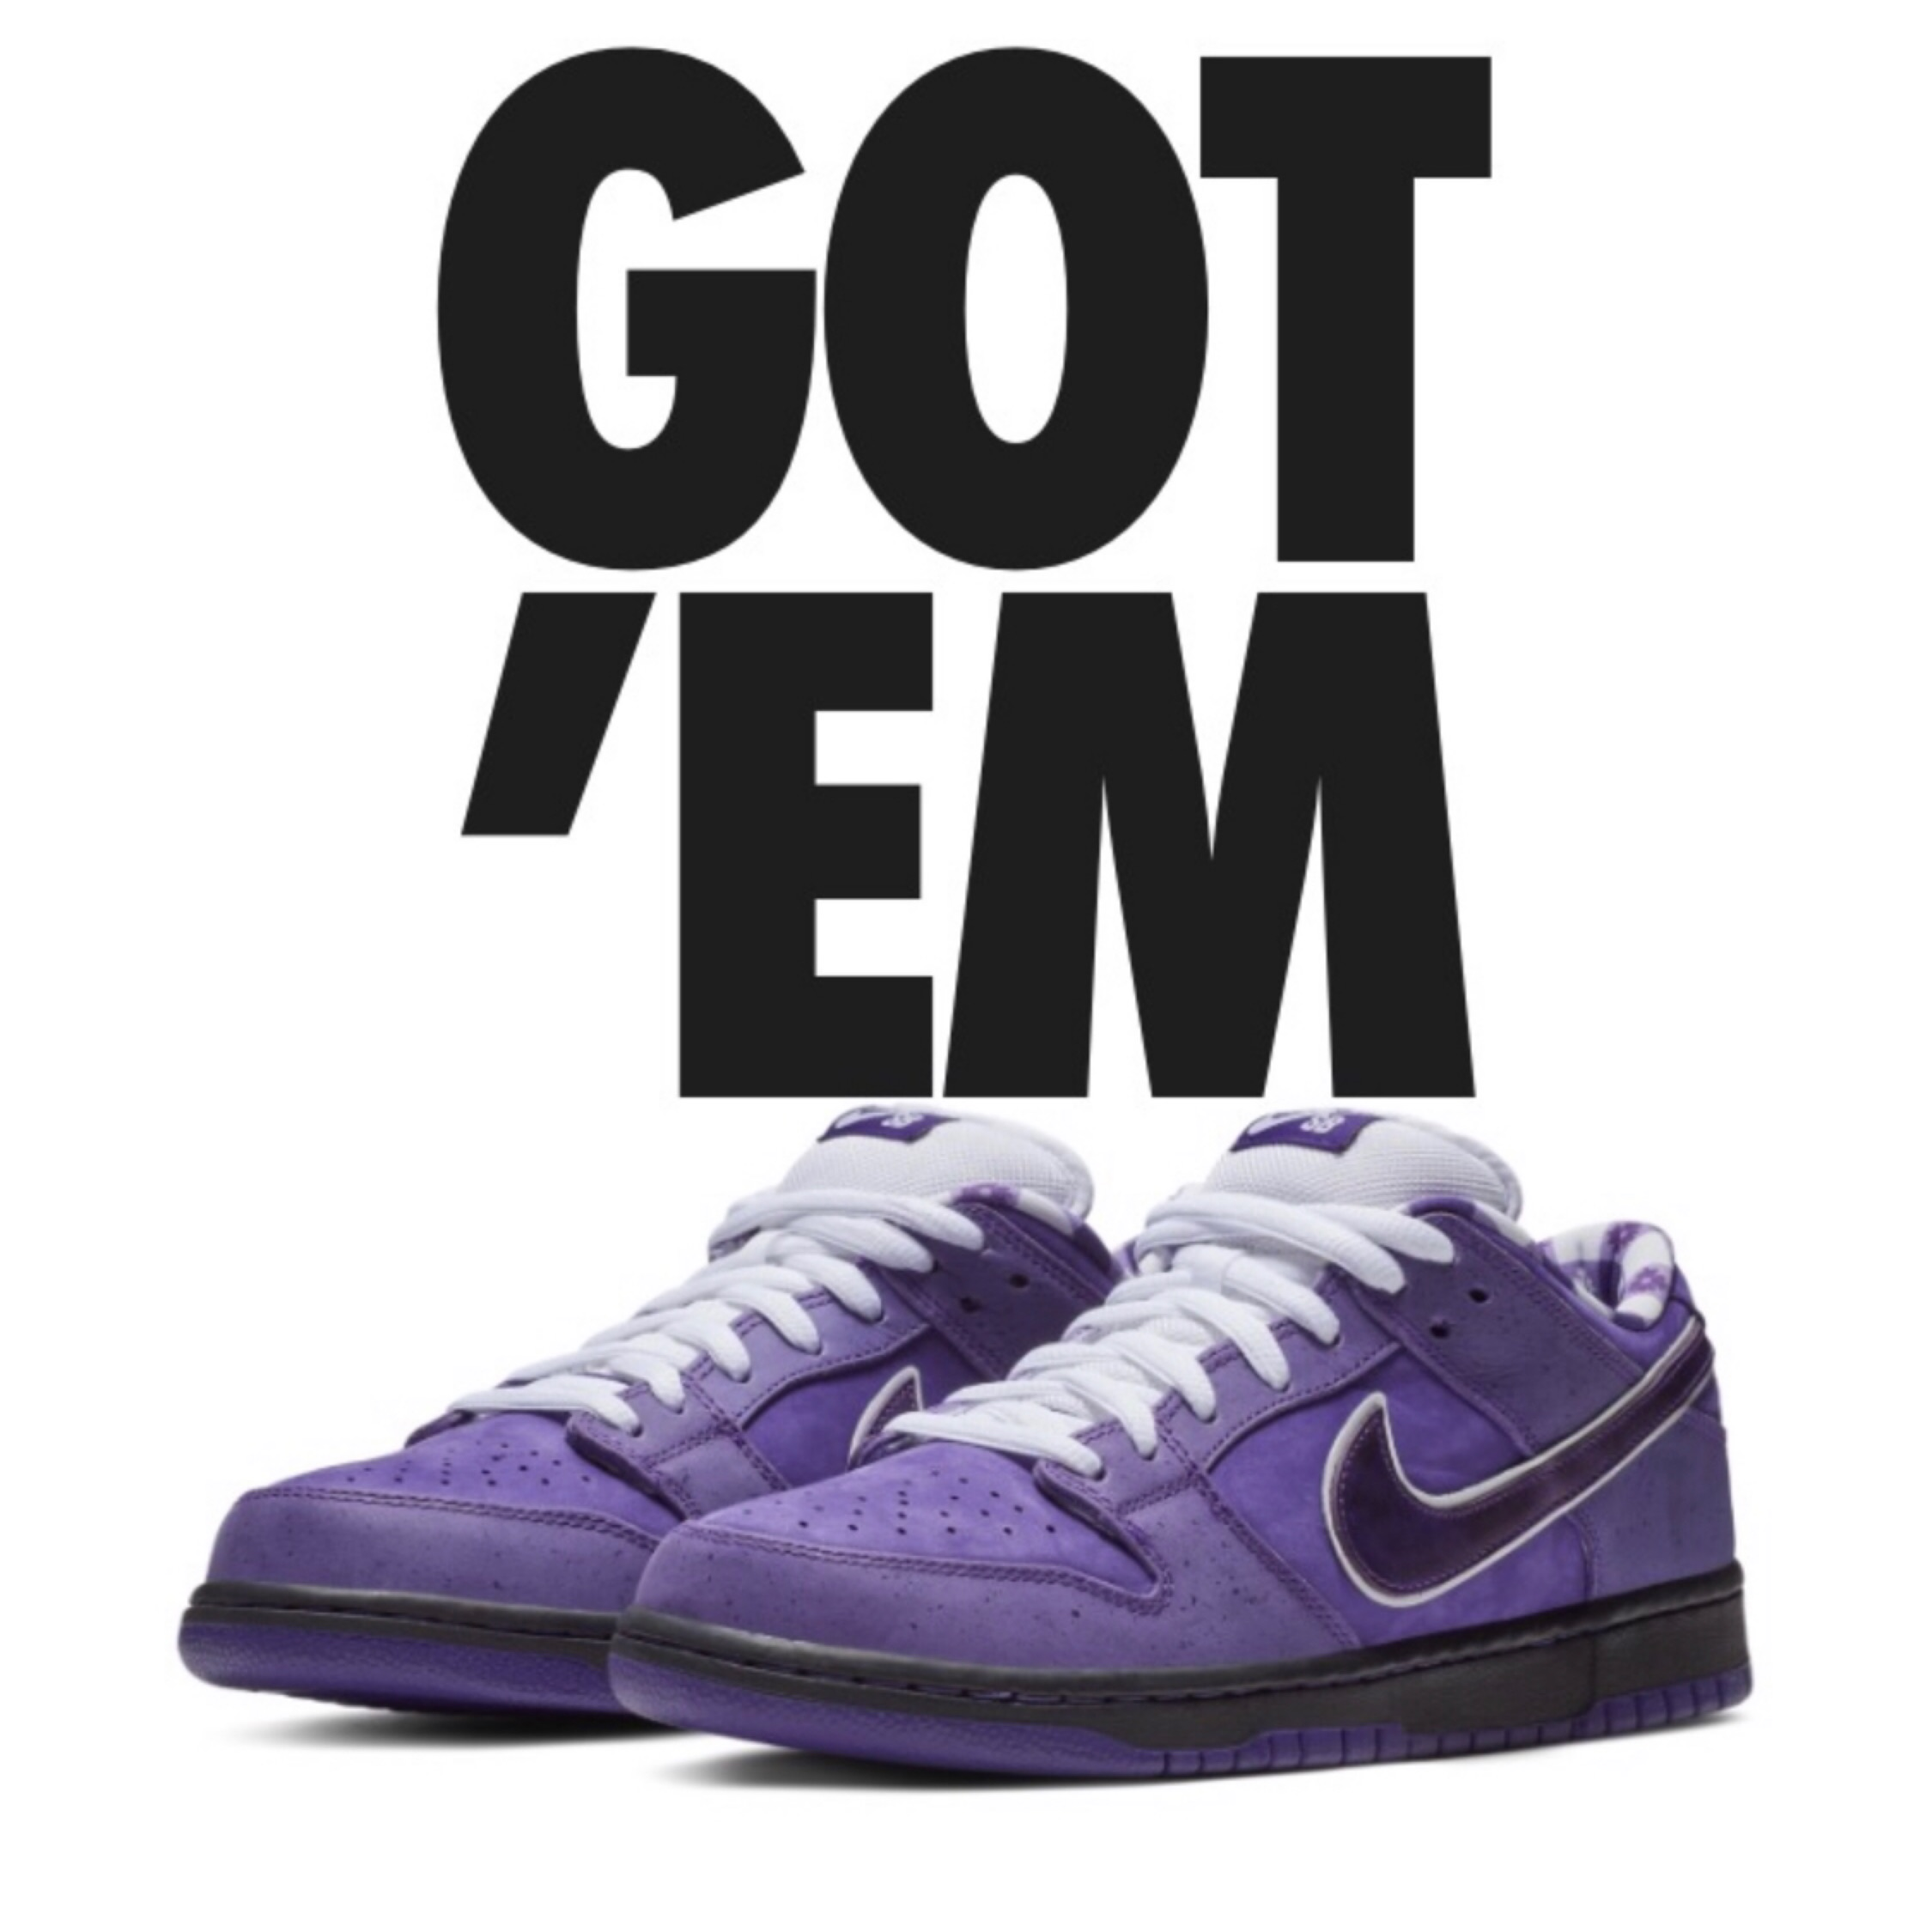 reputable site 9a376 7db32 Nike X Concepts Purple Lobster Sb Dunks Size 10